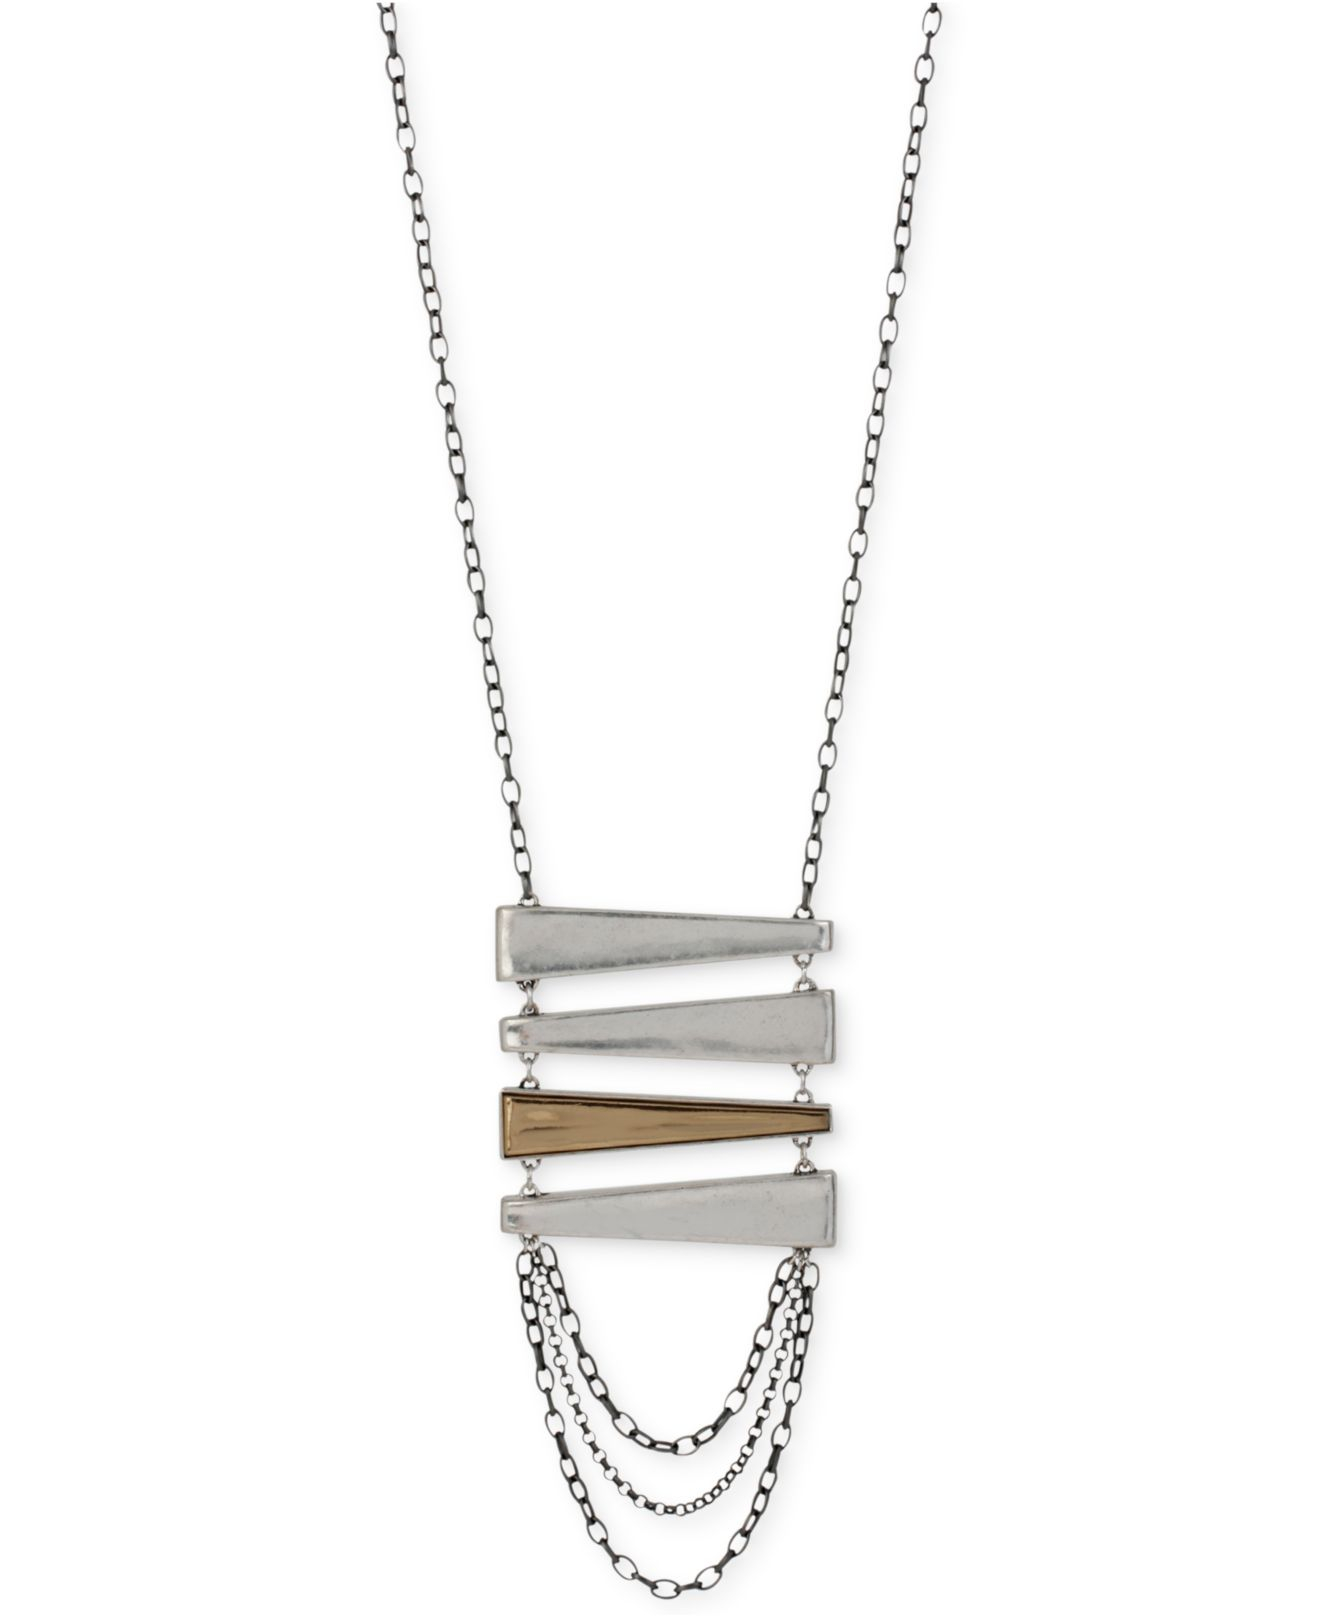 robert morris jewelry bar pendant necklace lyst robert morris bar pendant necklace in metallic